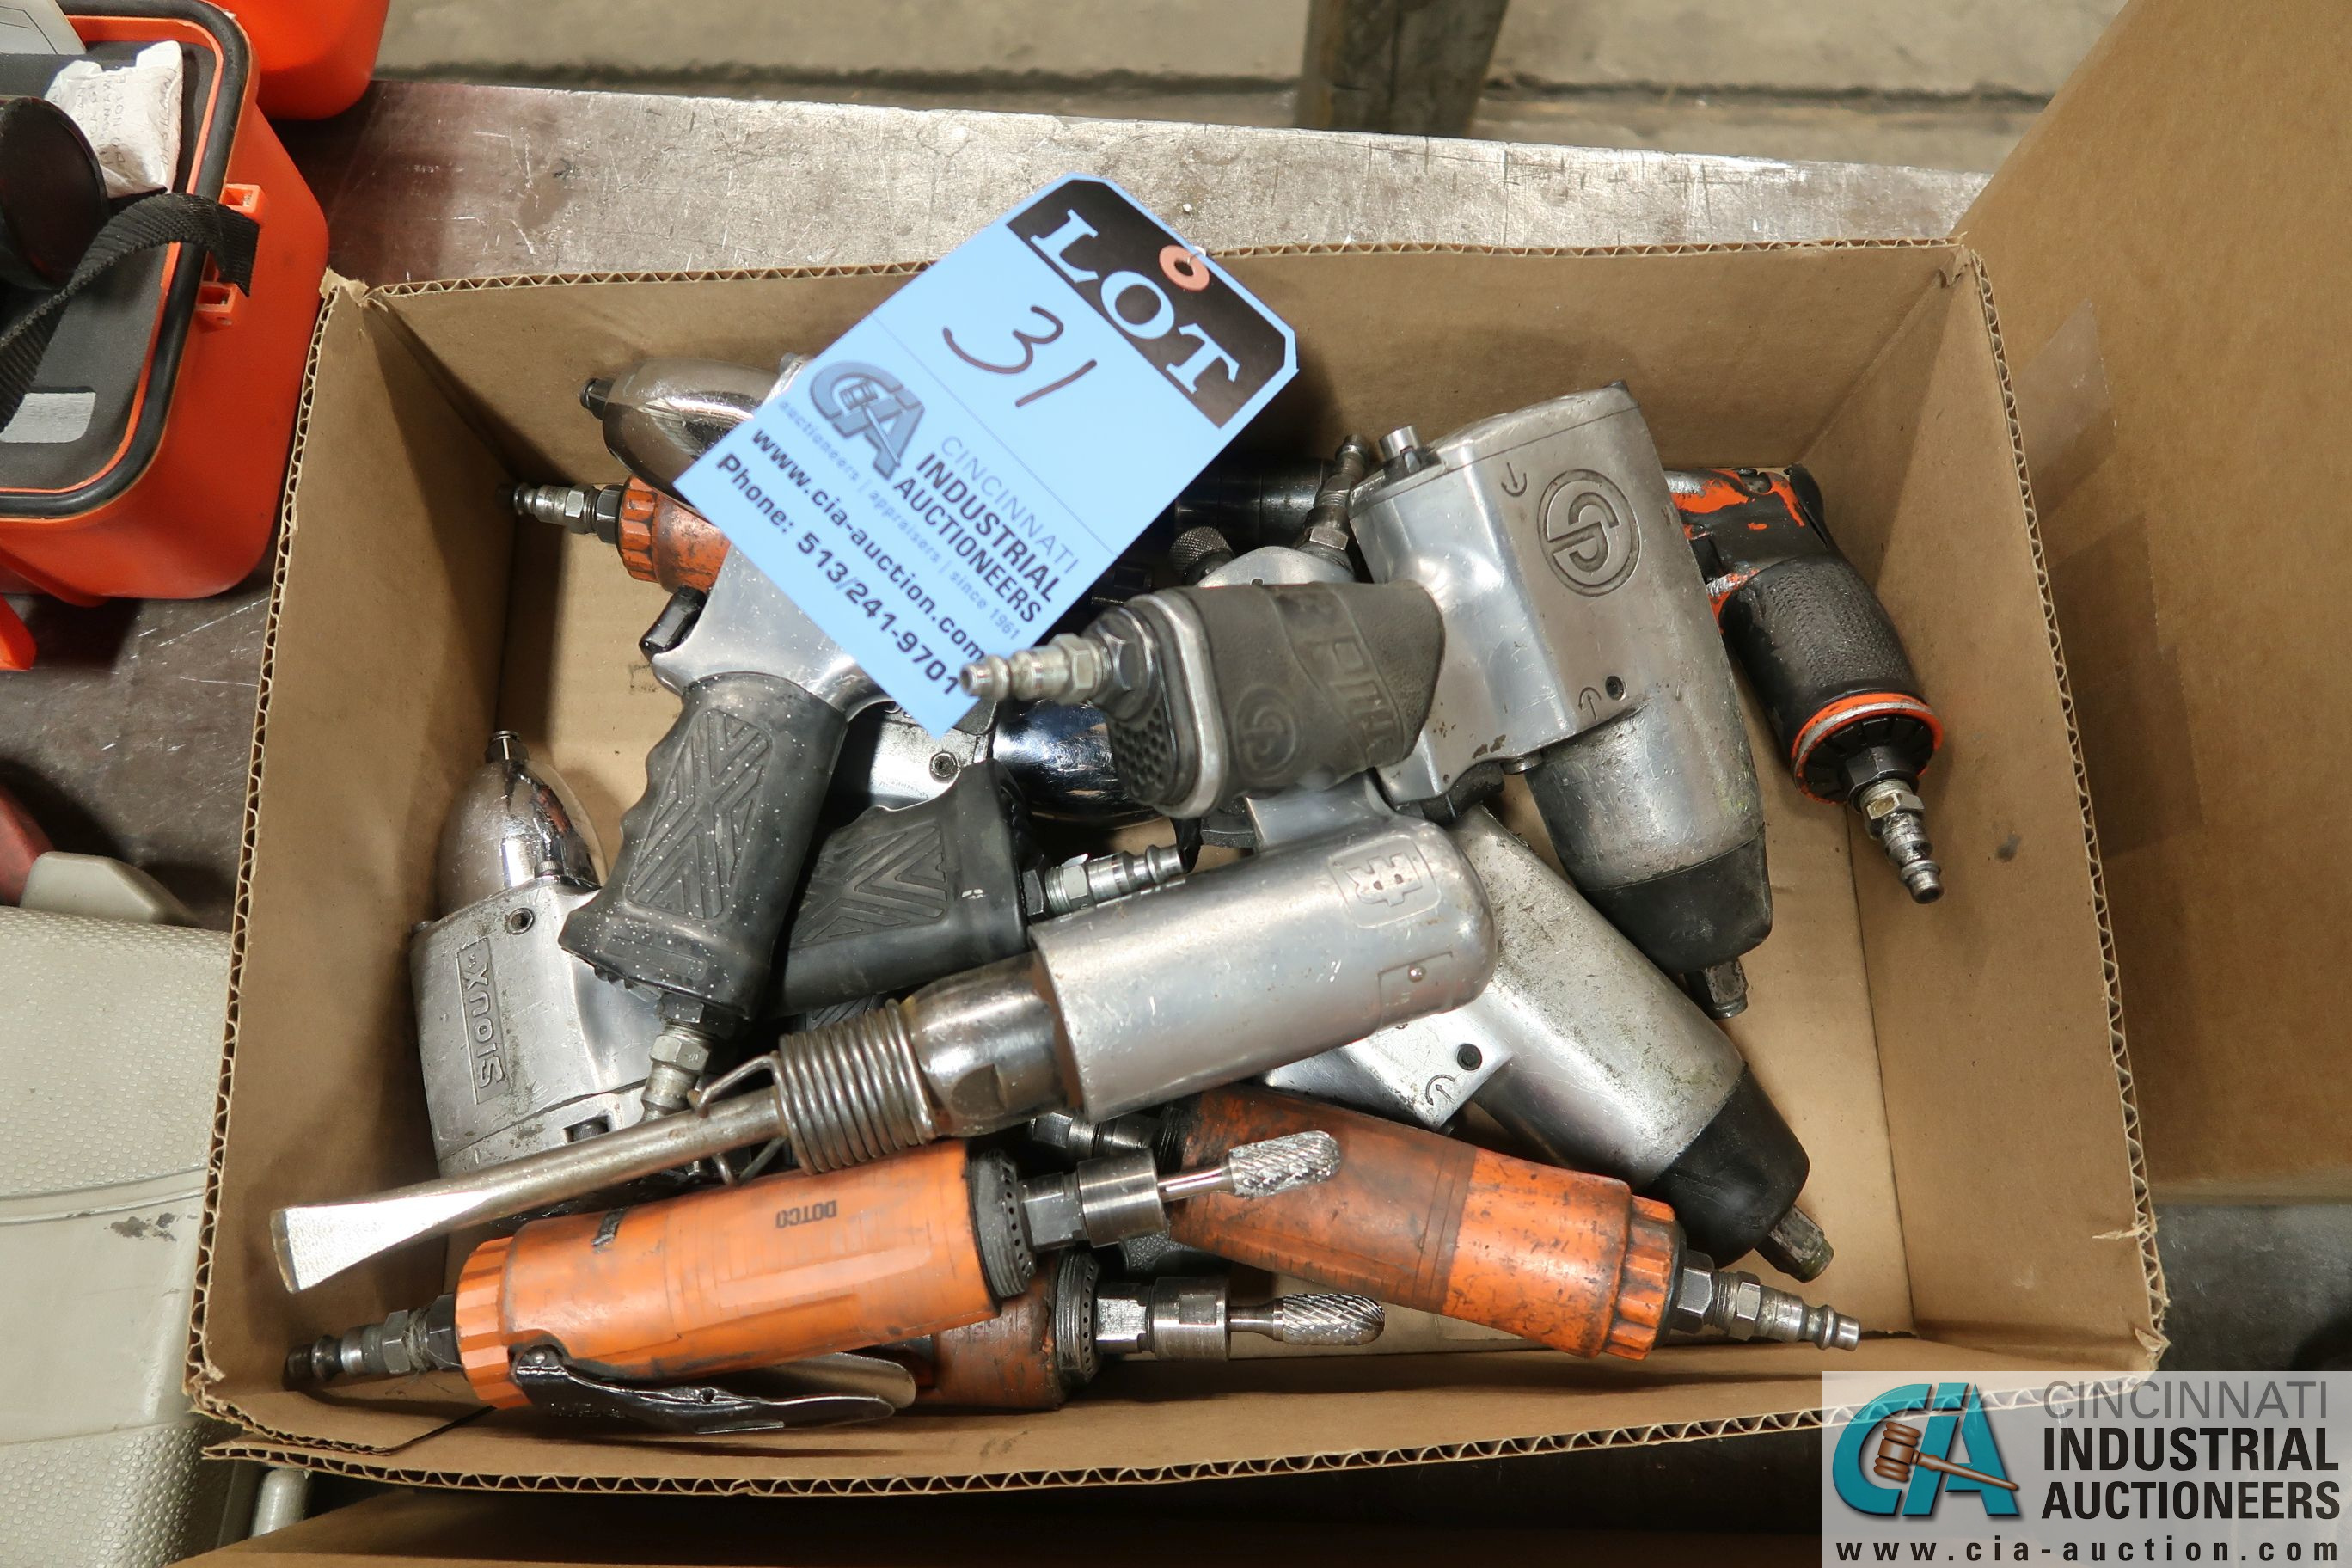 (LOT) PNEUMATIC TOOLS INCLUDING IMPACT WRENCHES, DIE GRINDERS, CHISEL